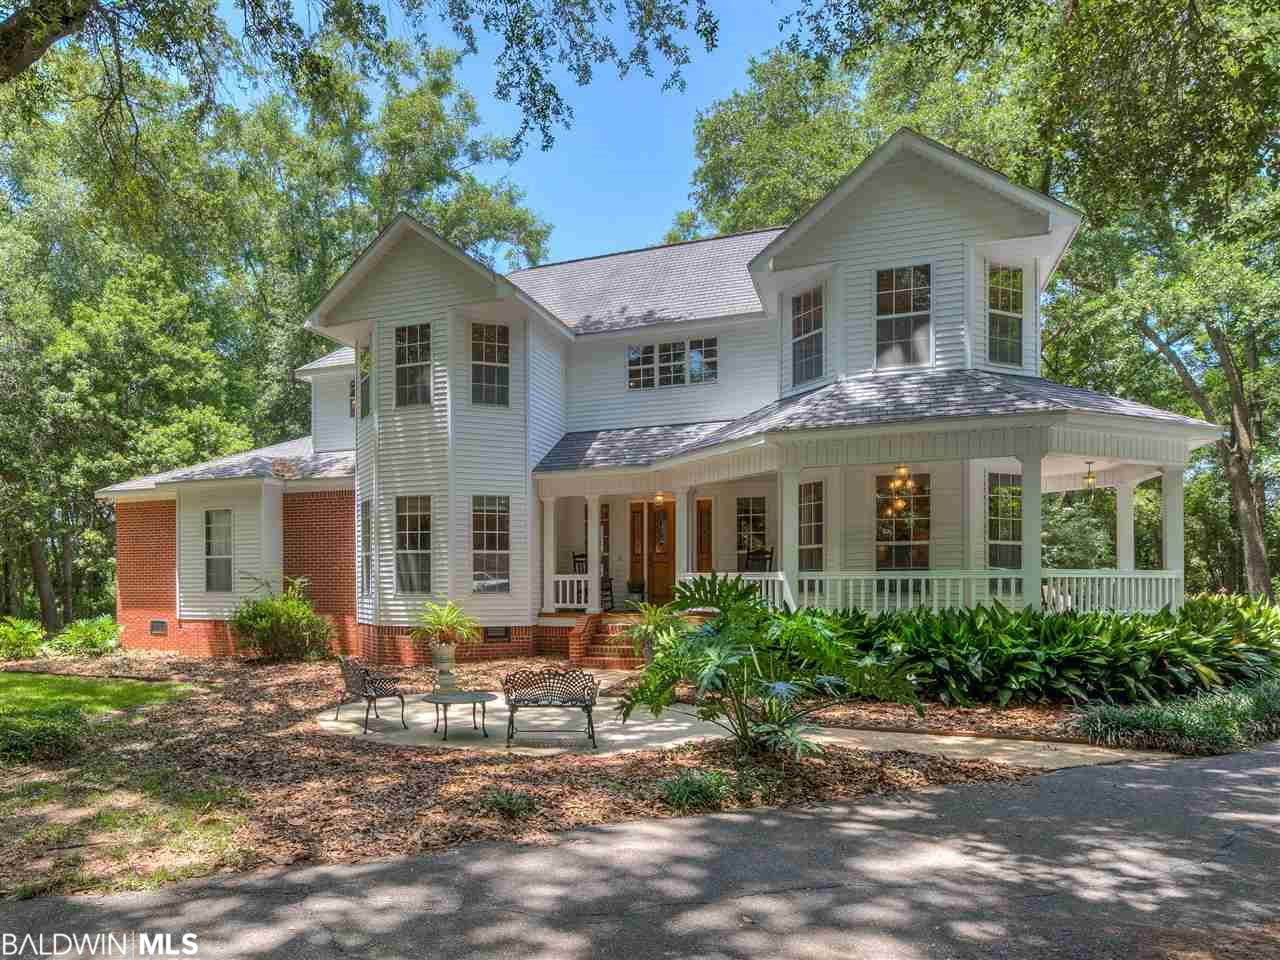 16760 County Road 3, Fairhope, AL 36532